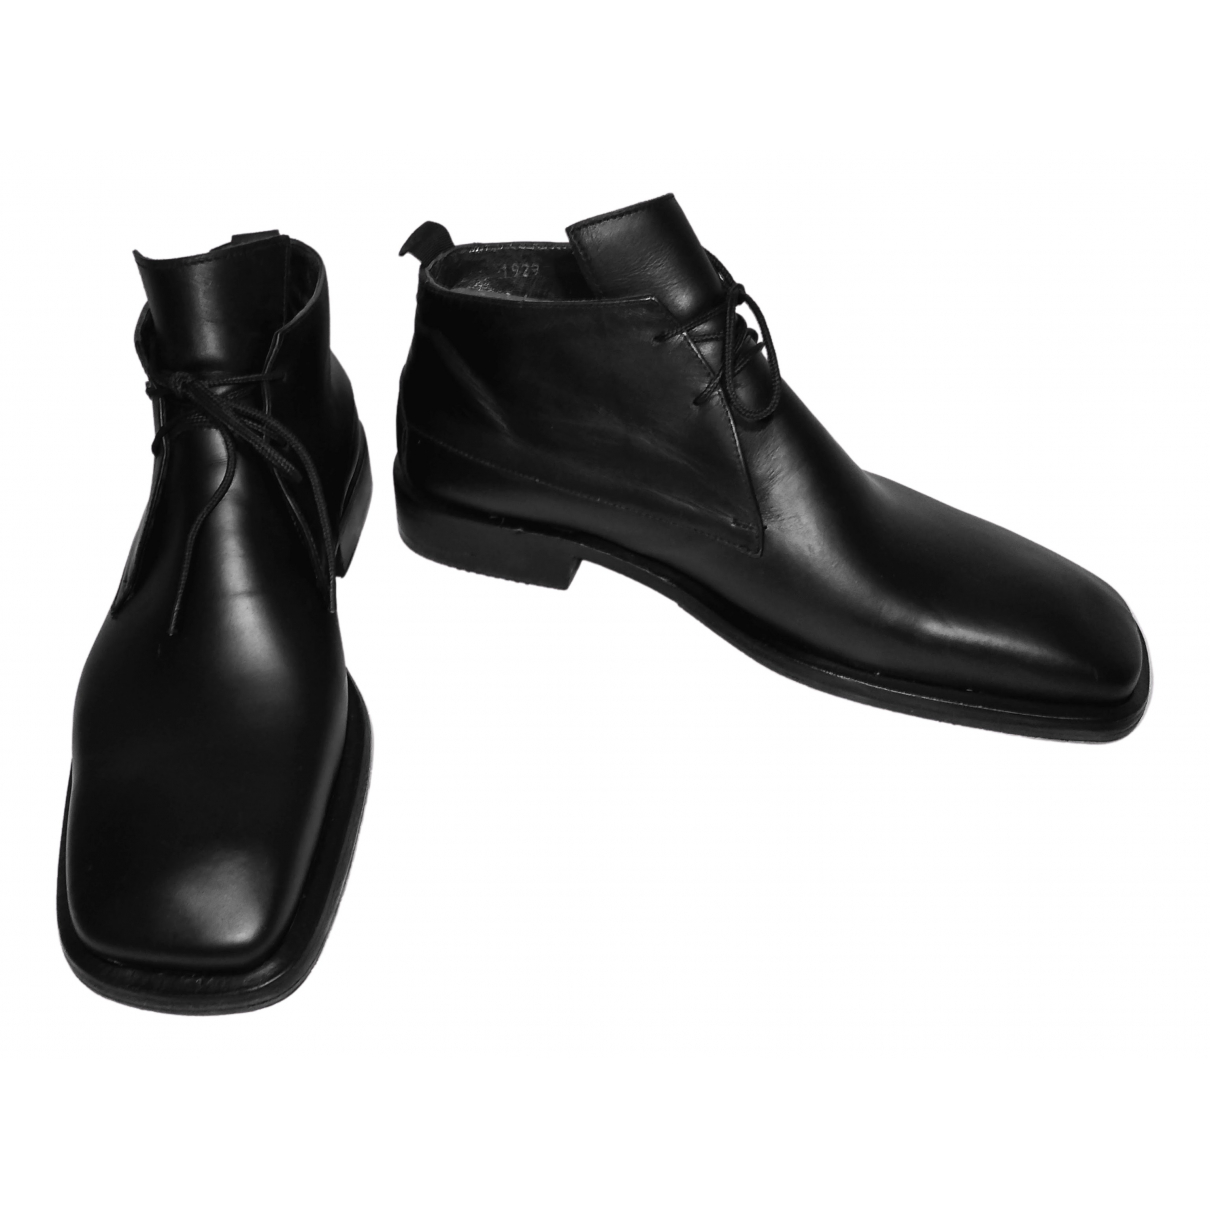 Cesare Paciotti N Black Leather Boots for Men 8 UK